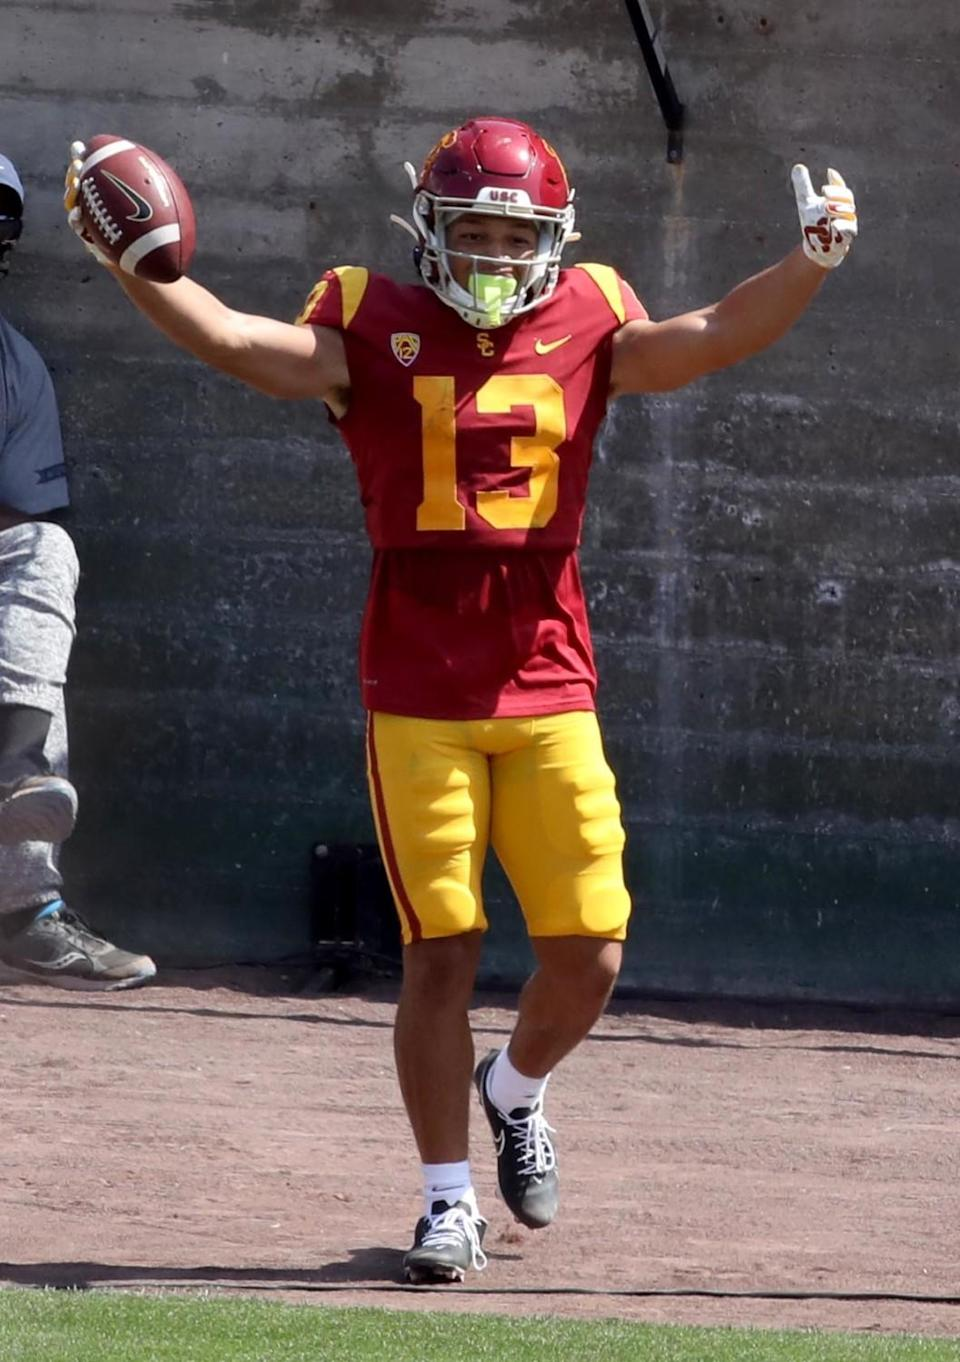 USC wide receiver Michael Jackson celebrates a touchdown during the spring game April 17, 2021.